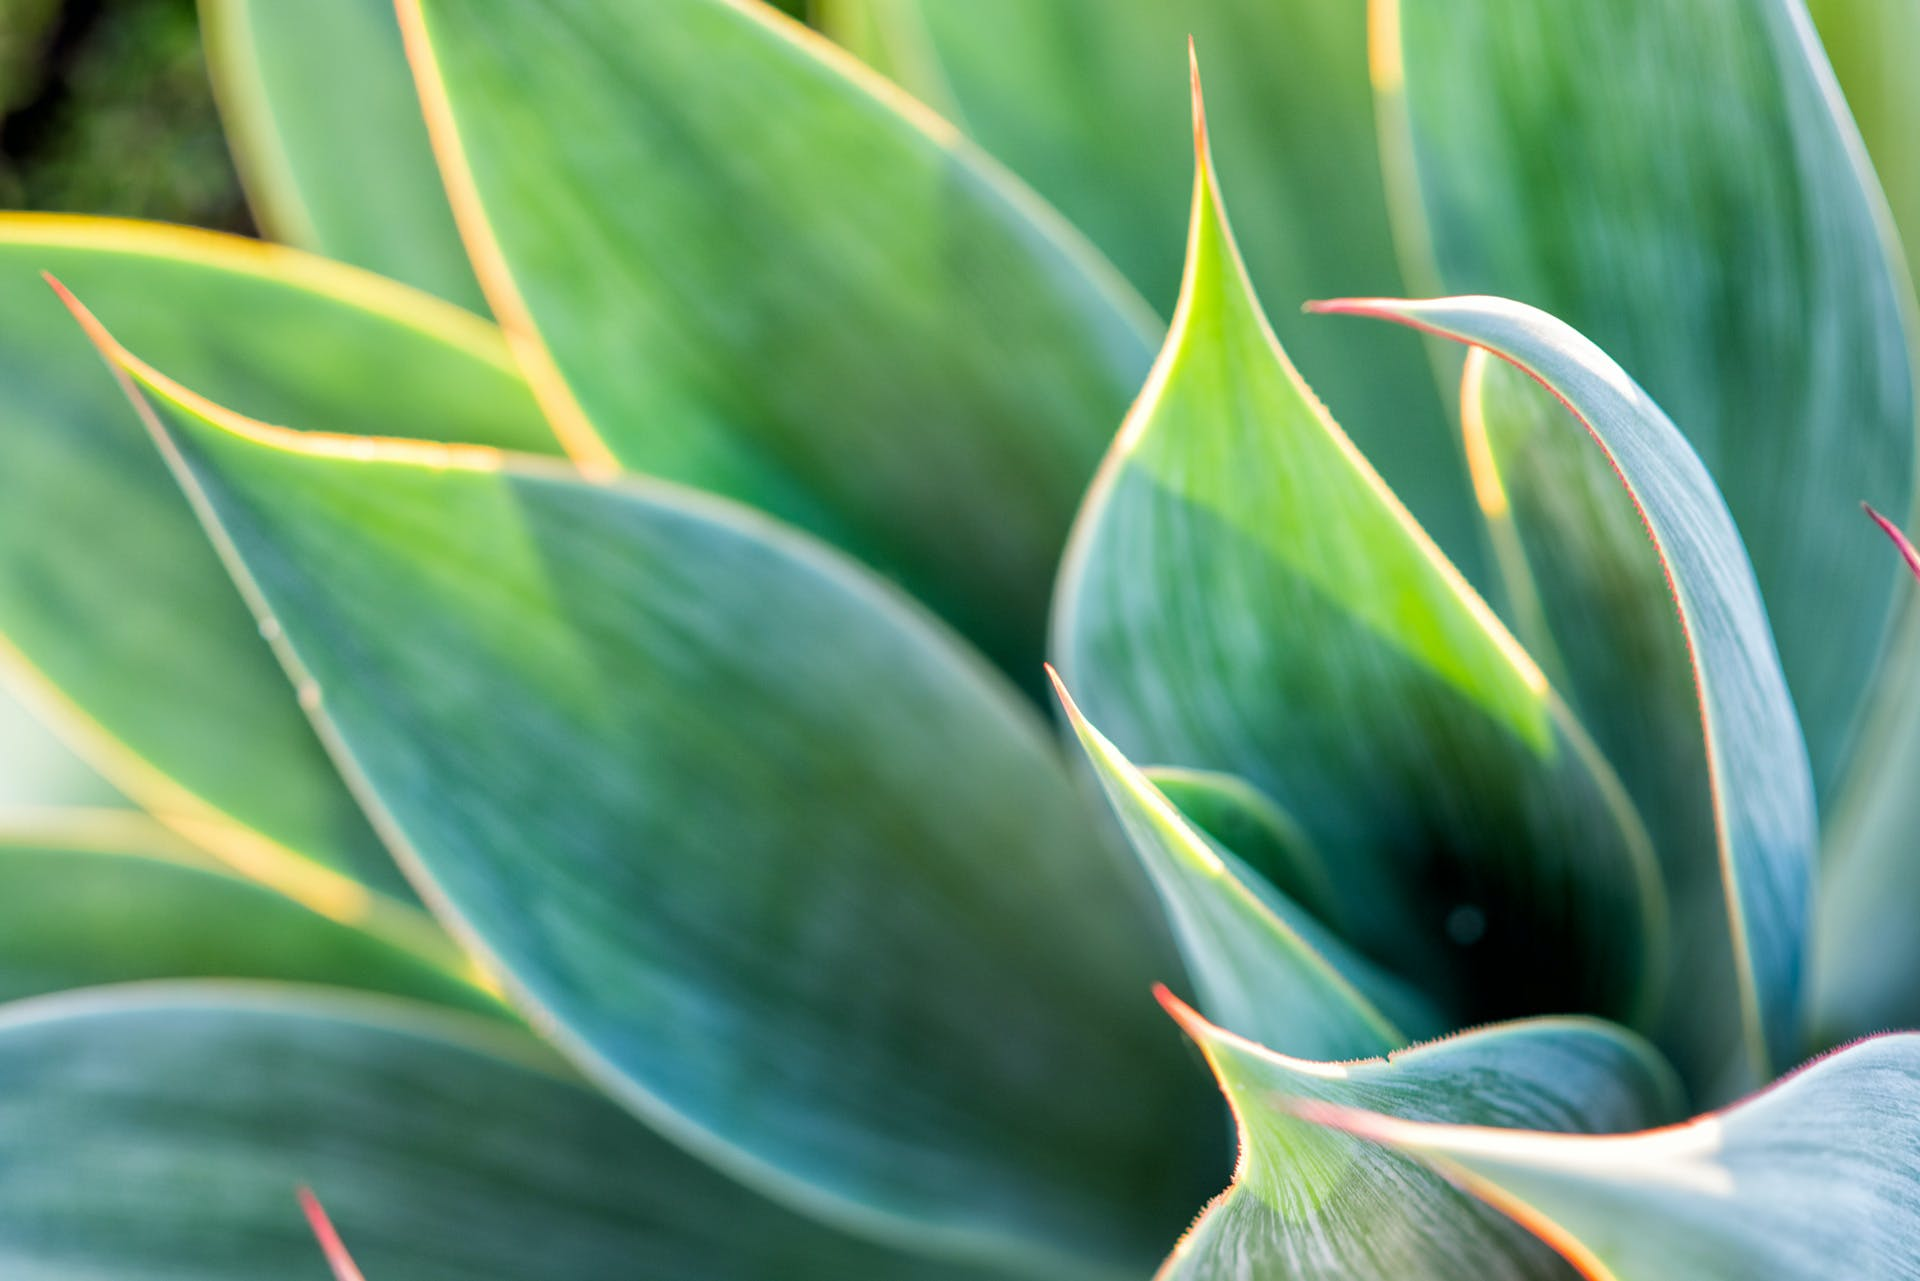 Free stock photo of Agave attenuata, drought plant, foliage, green